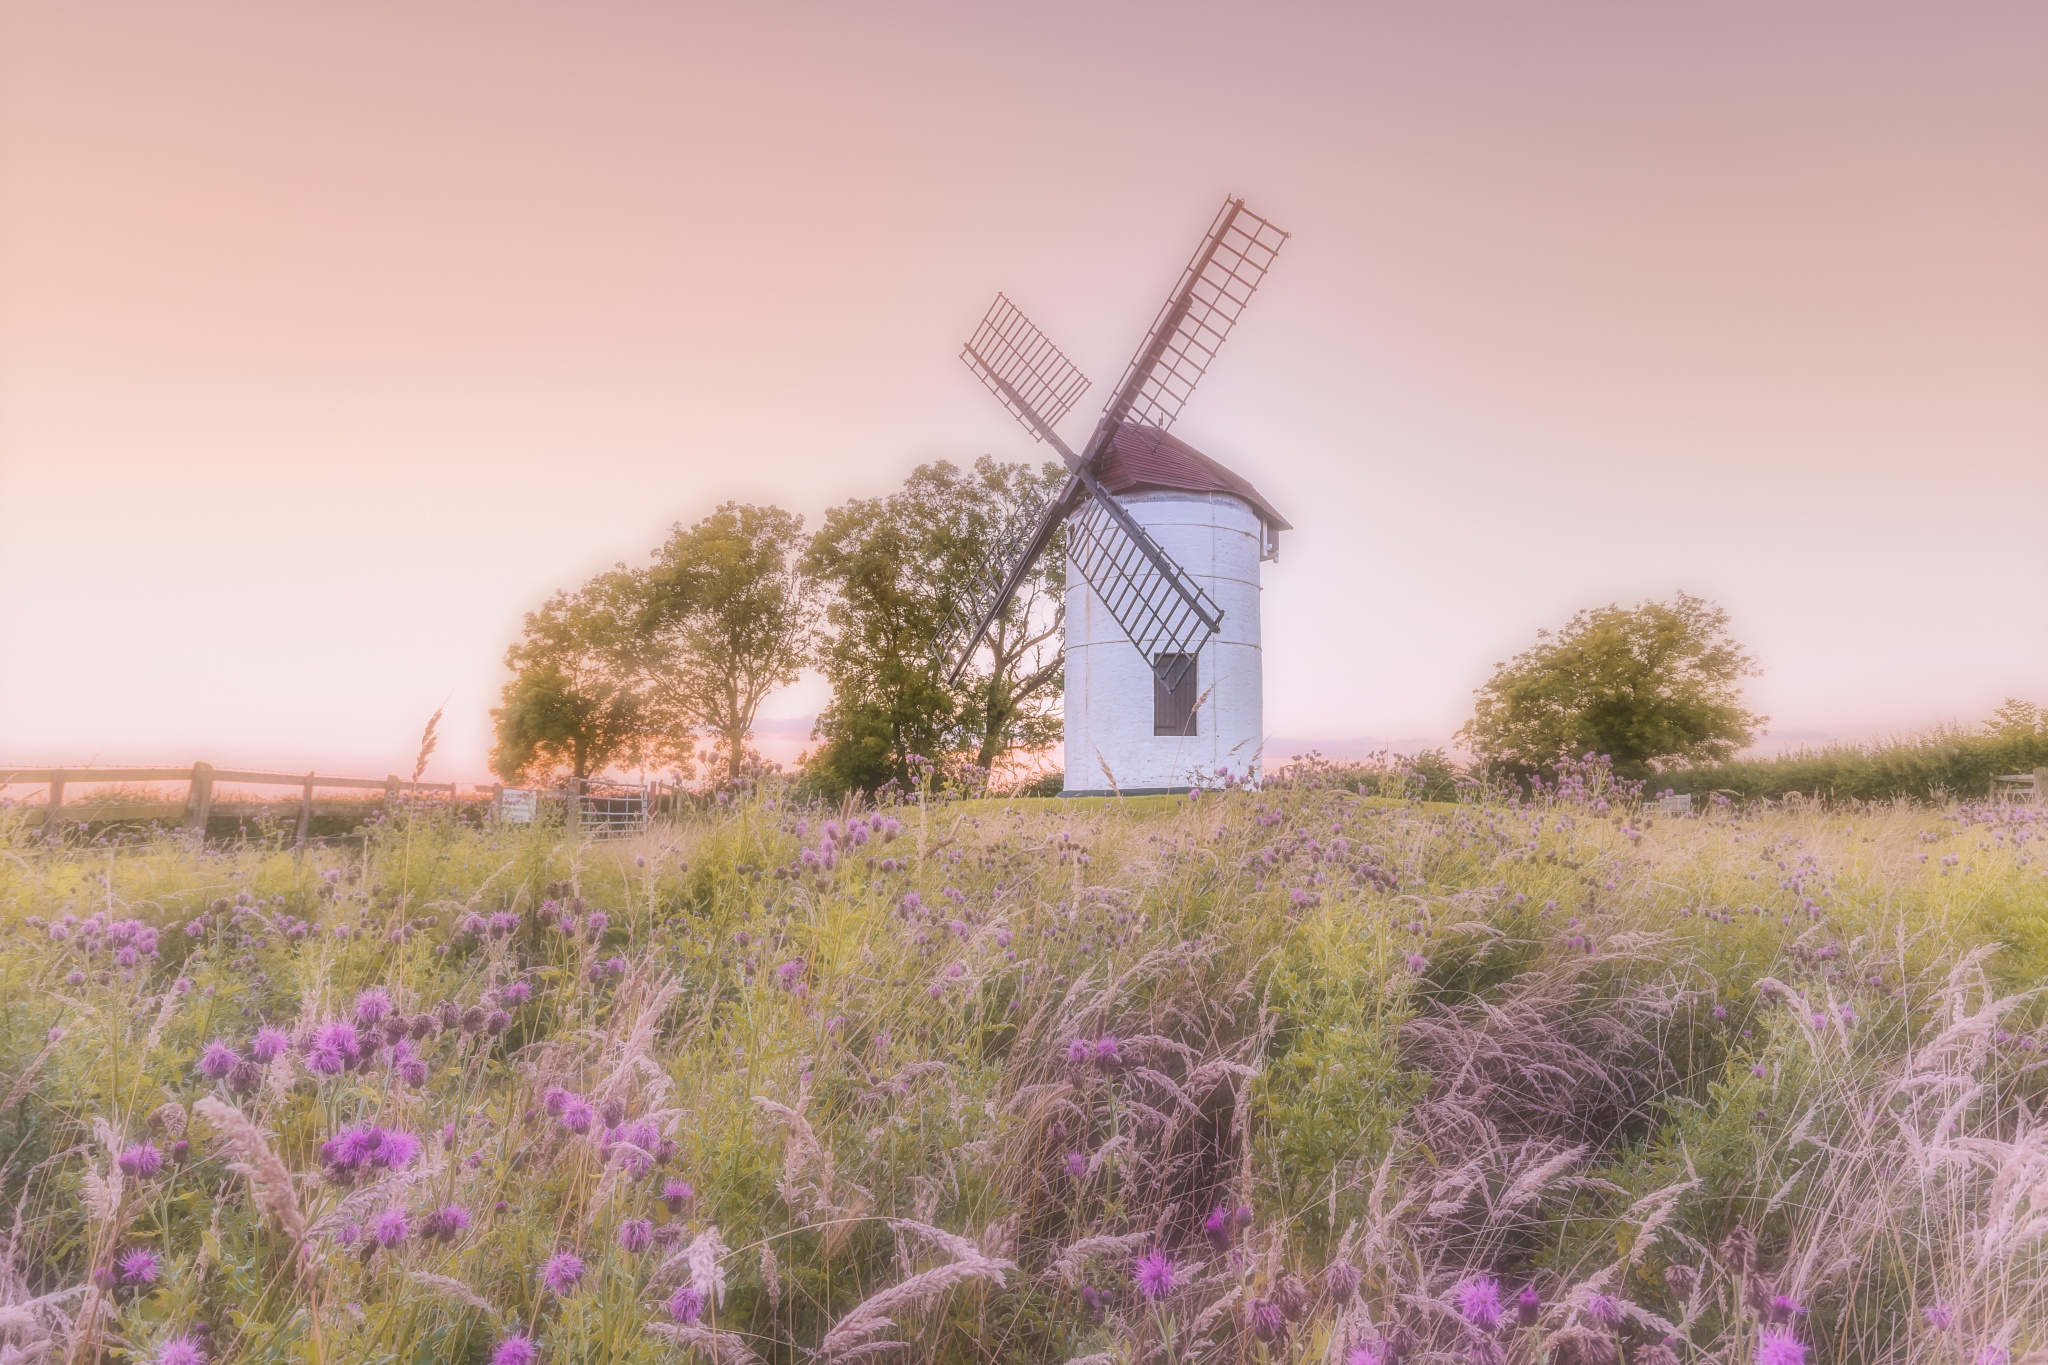 The windmill by M.A.Nash Photograpy